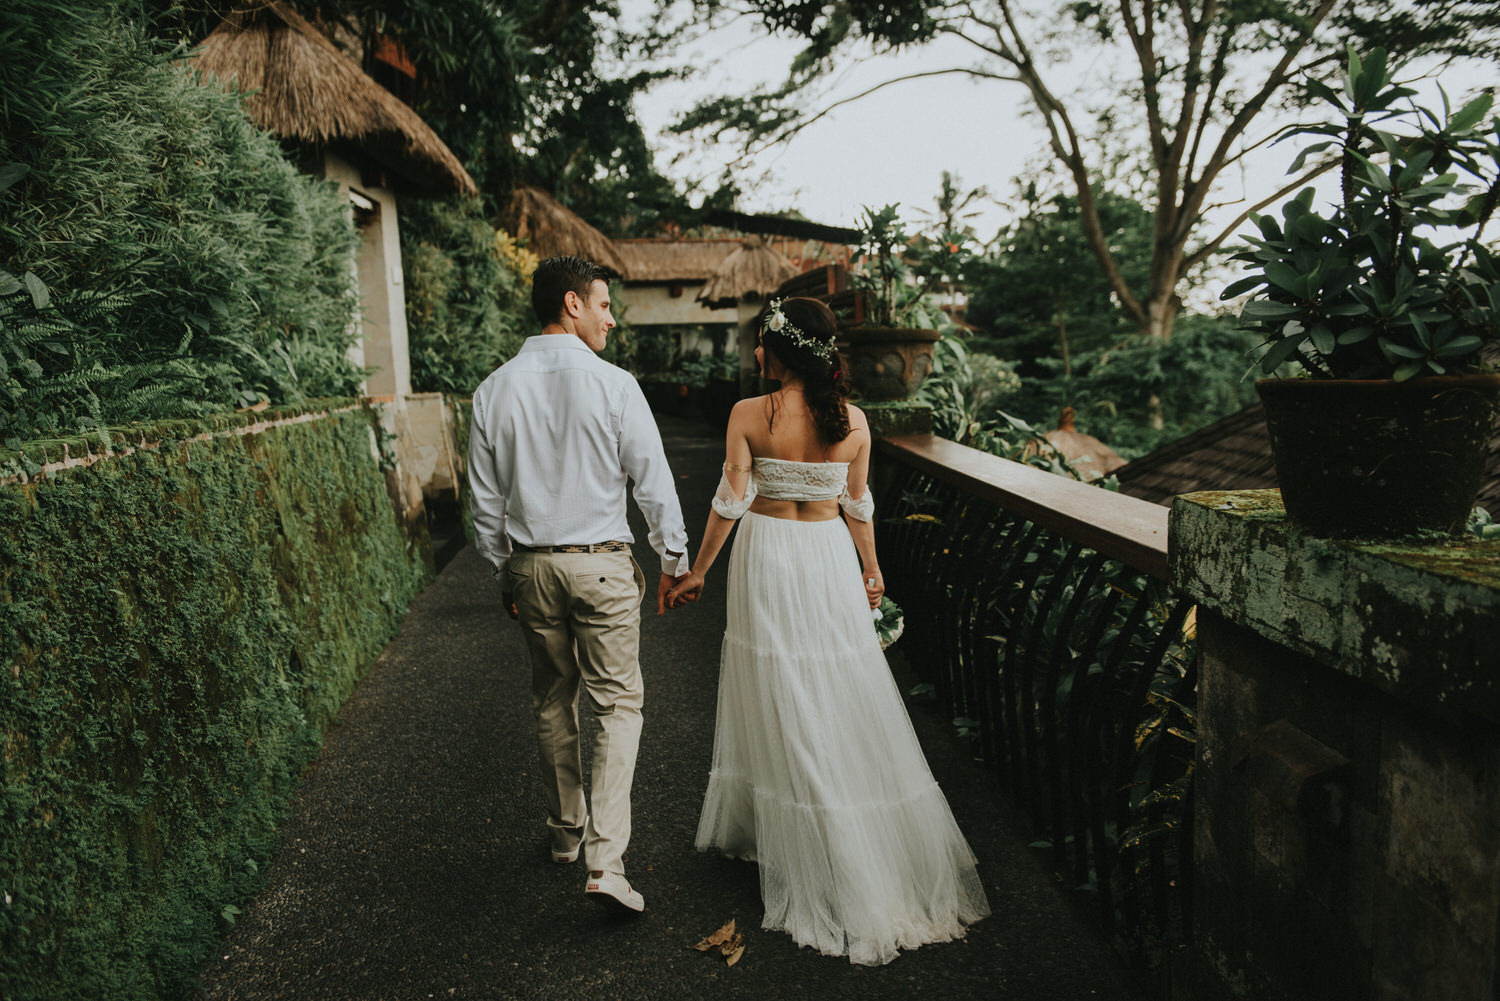 bali wedding - elopement - ubud wedding - diktatphotography - olga + Jason - 69